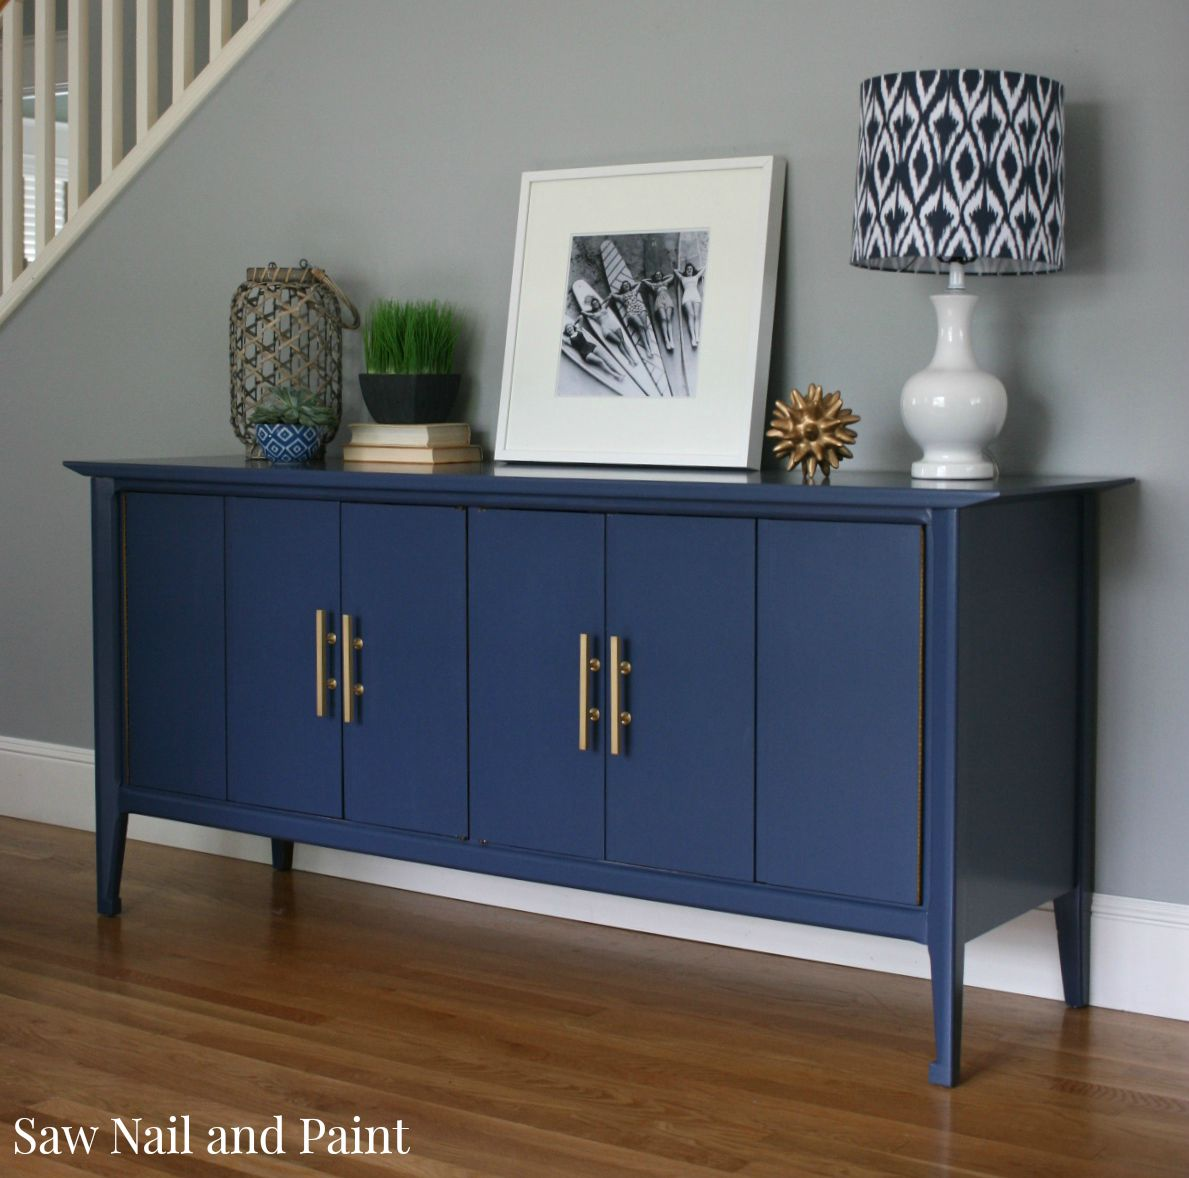 Buffet Sideboard Blue Indigo Blue Mid Century Buffet Saw Nail And Paint